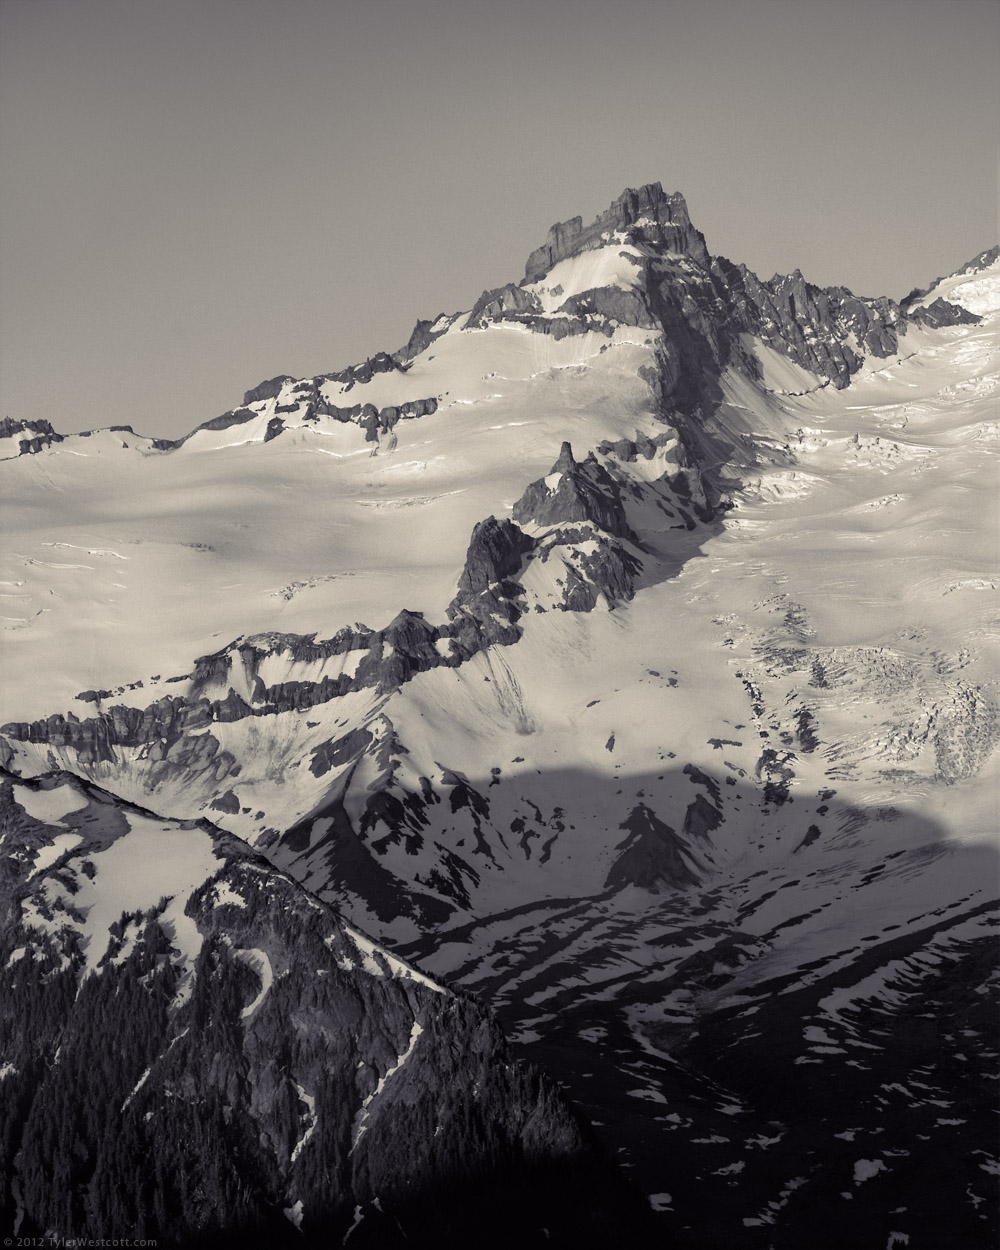 Little Tahoma Peak, Mount Rainier National Park